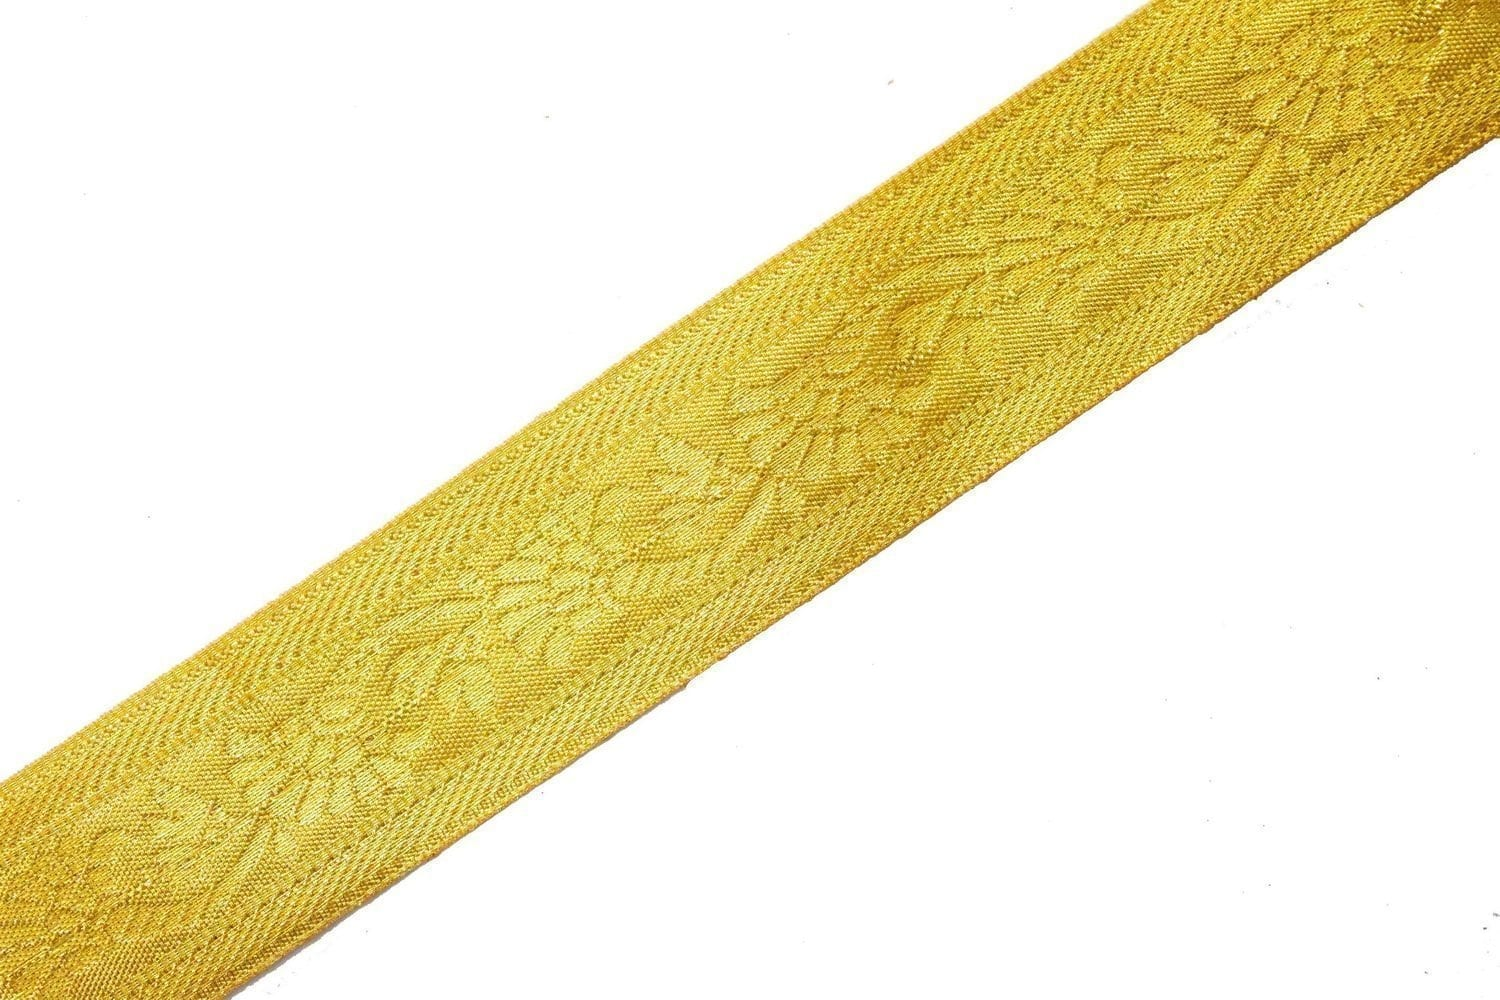 Golden Gota Border Lace 4 cm wide Roll of 16 mtrs. 2